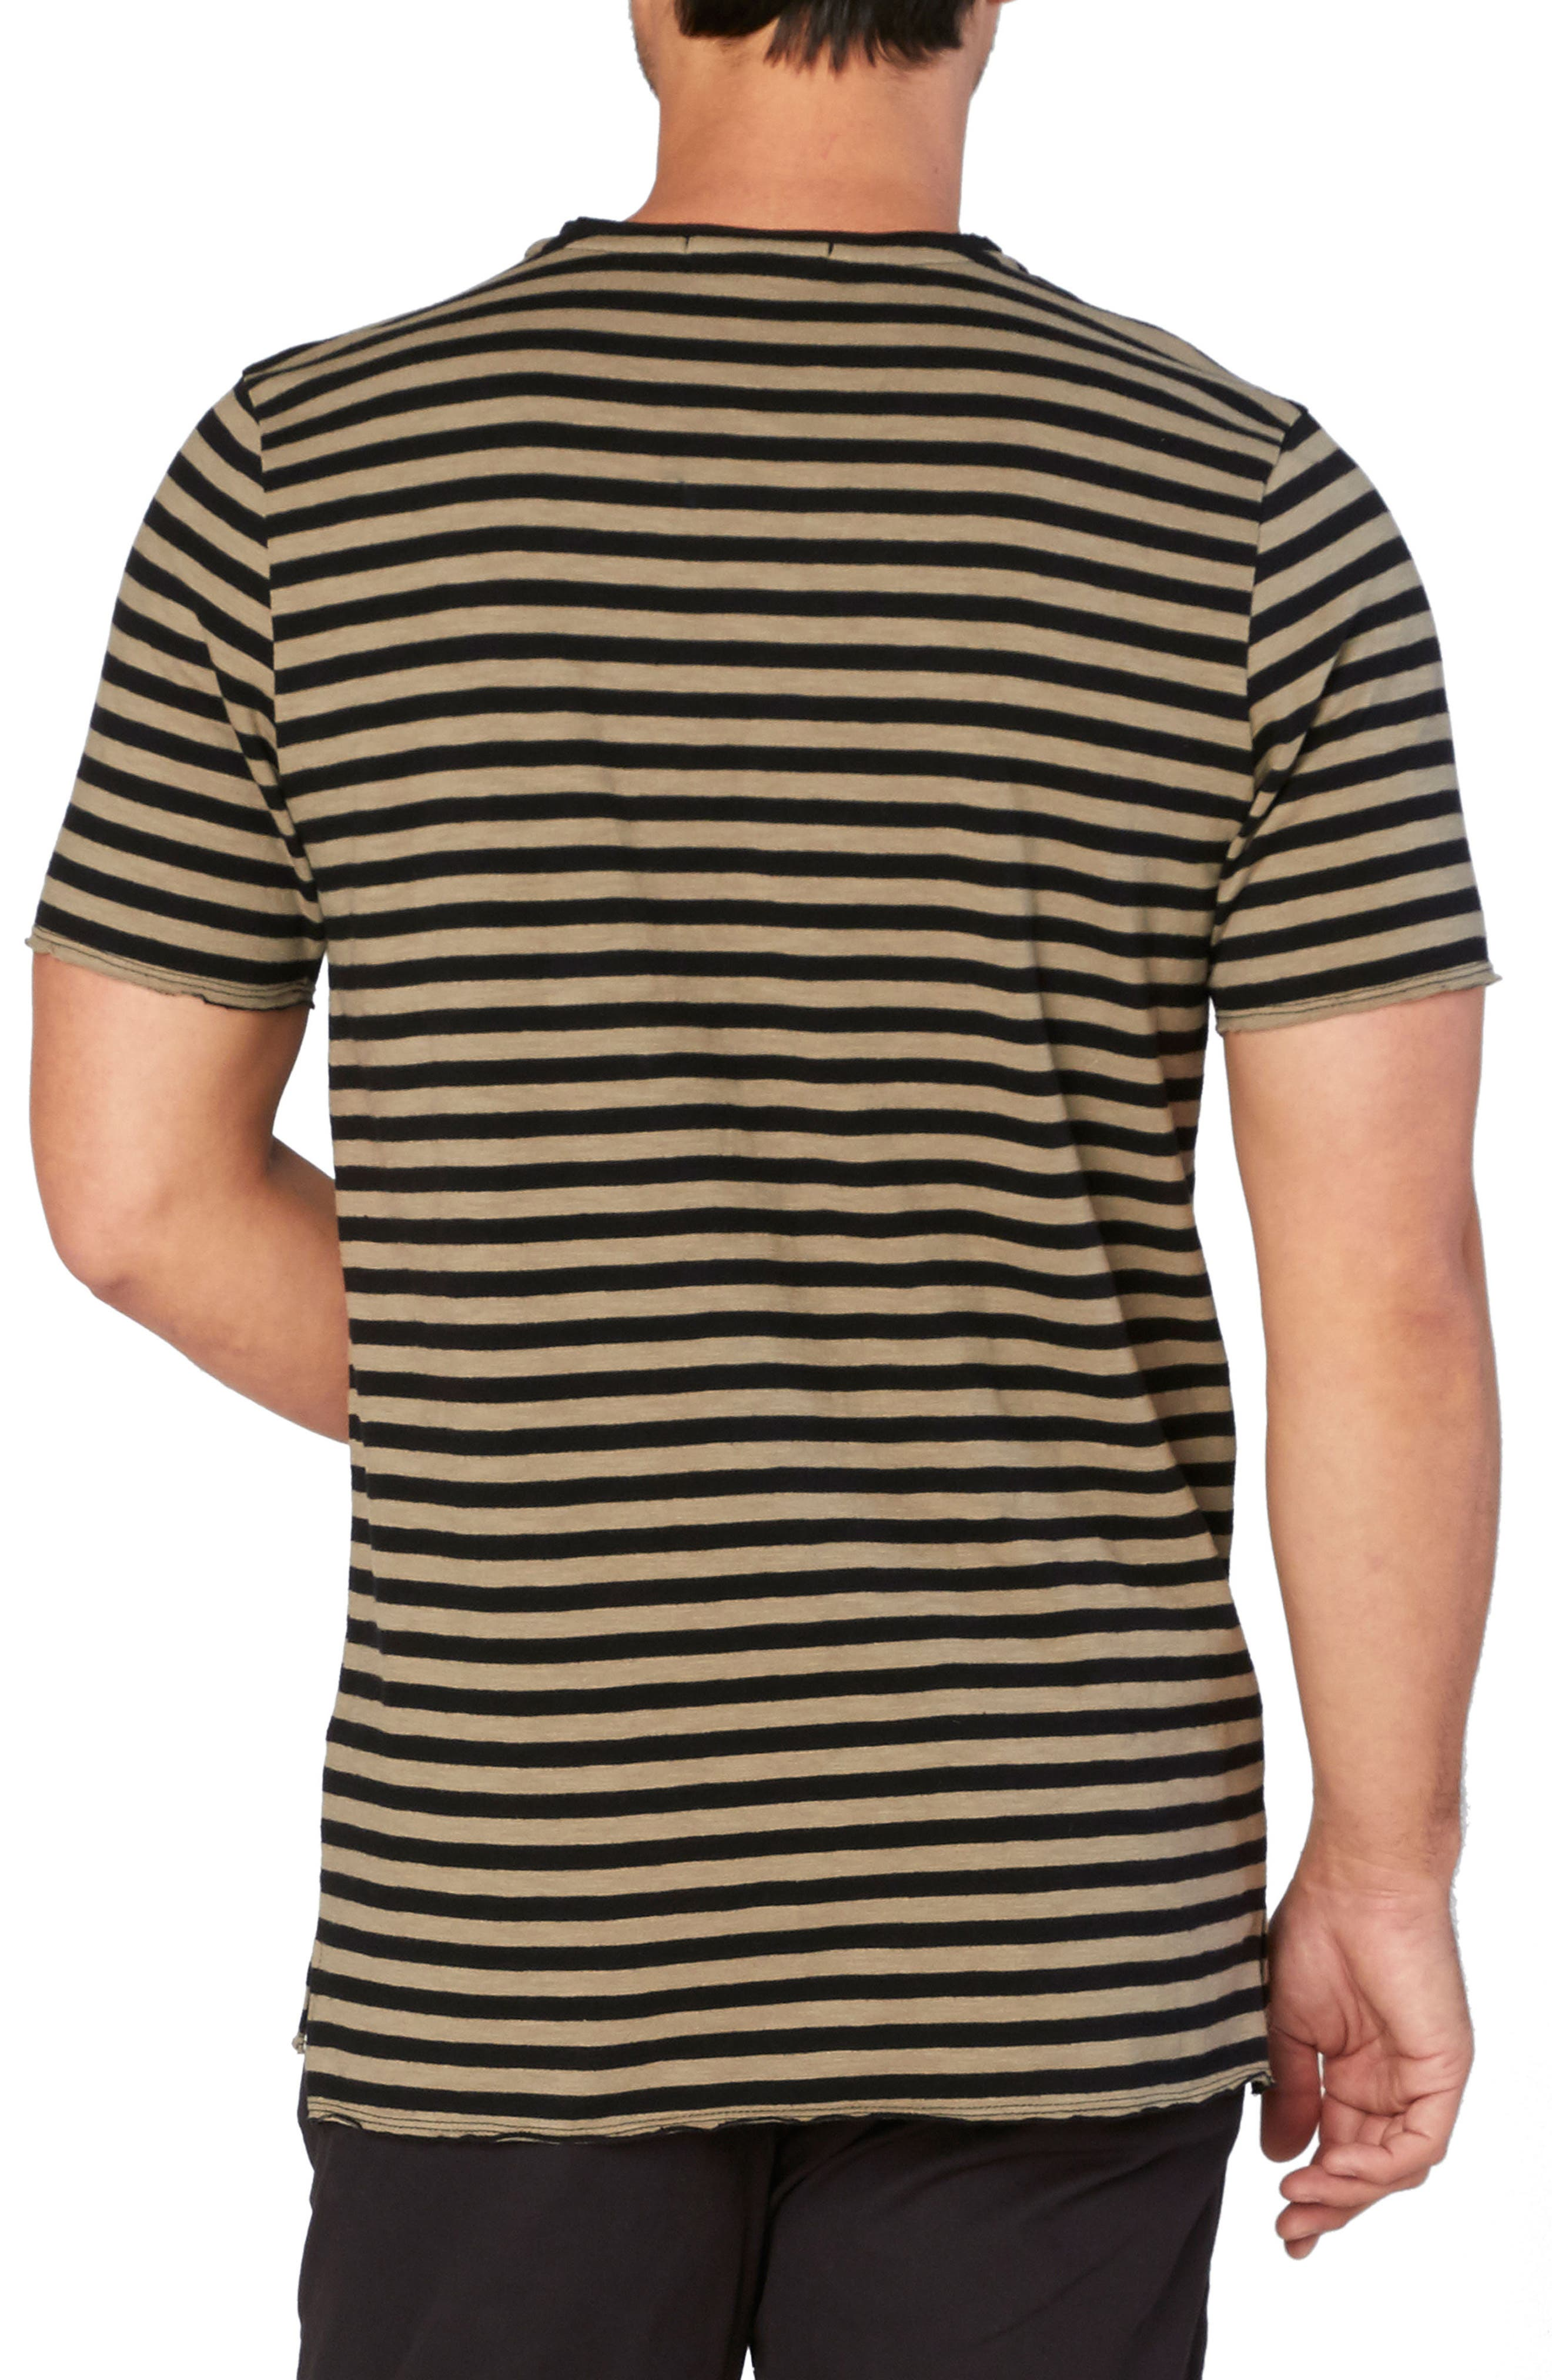 Kane Slub Stripe T-Shirt,                             Alternate thumbnail 2, color,                             Brindle